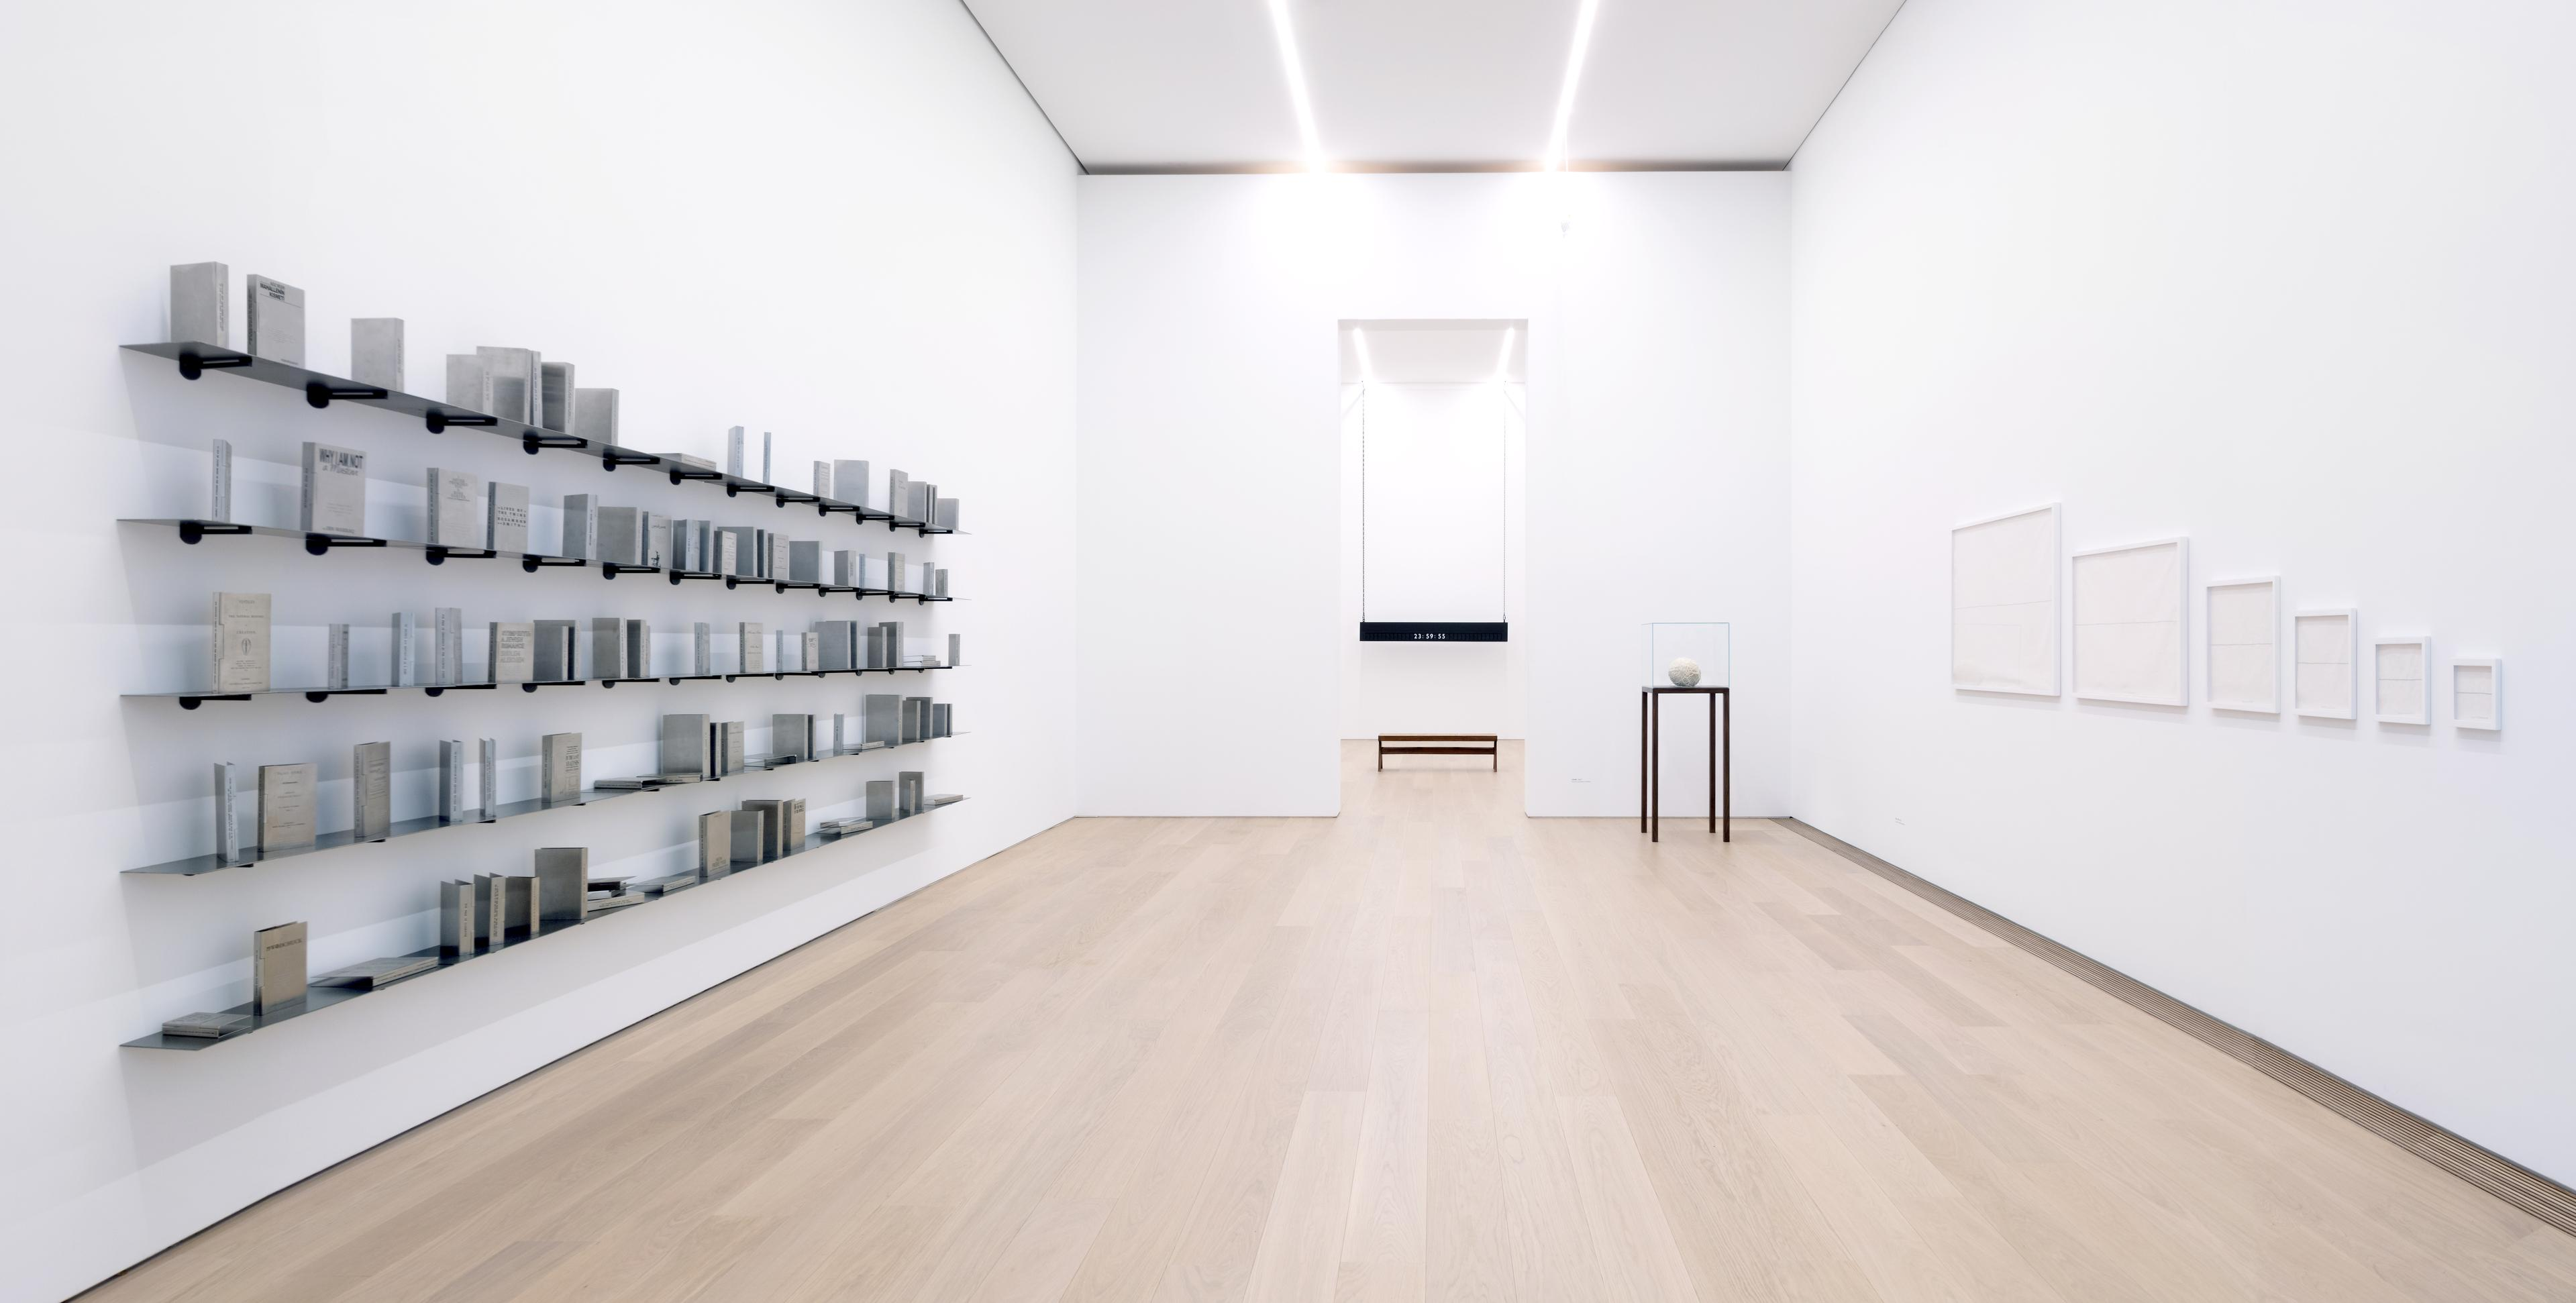 This is a image of Tanya Bonkadar Gallery in Los A...